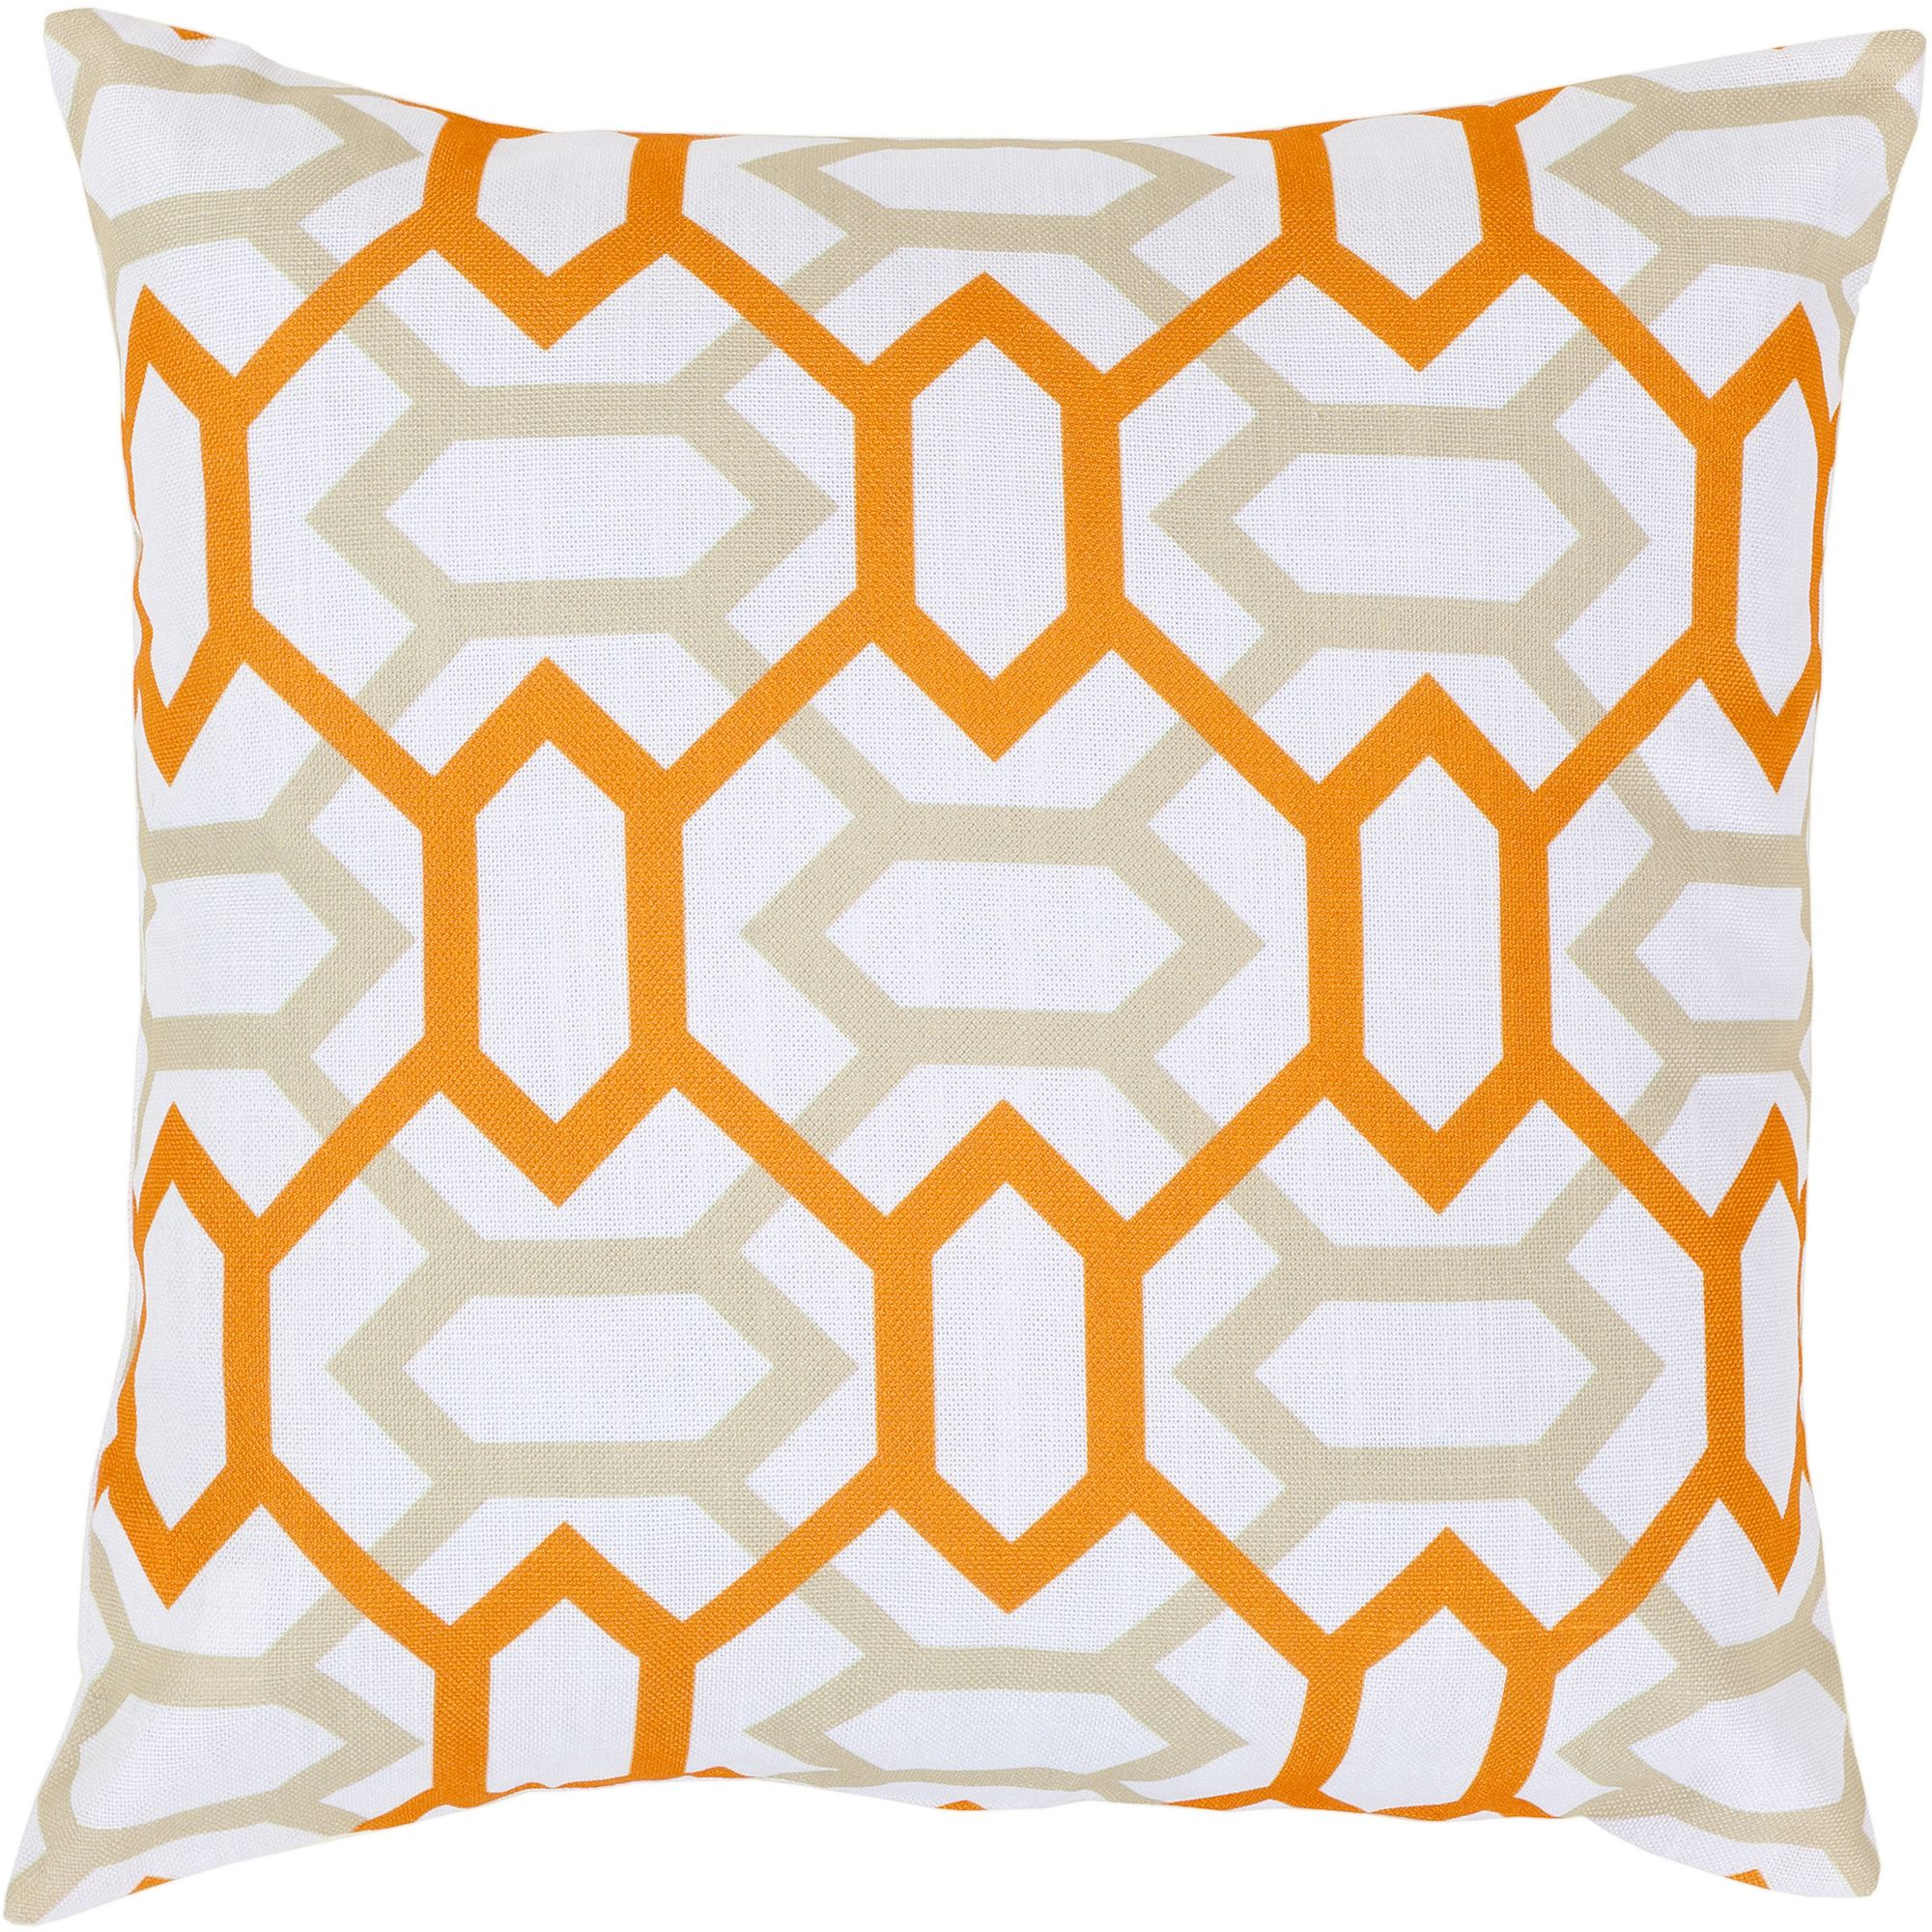 Art of Knot Carlisle Hand Crafted Gateway Pattern Decorative Pillow with Poly Filler, Tangerine